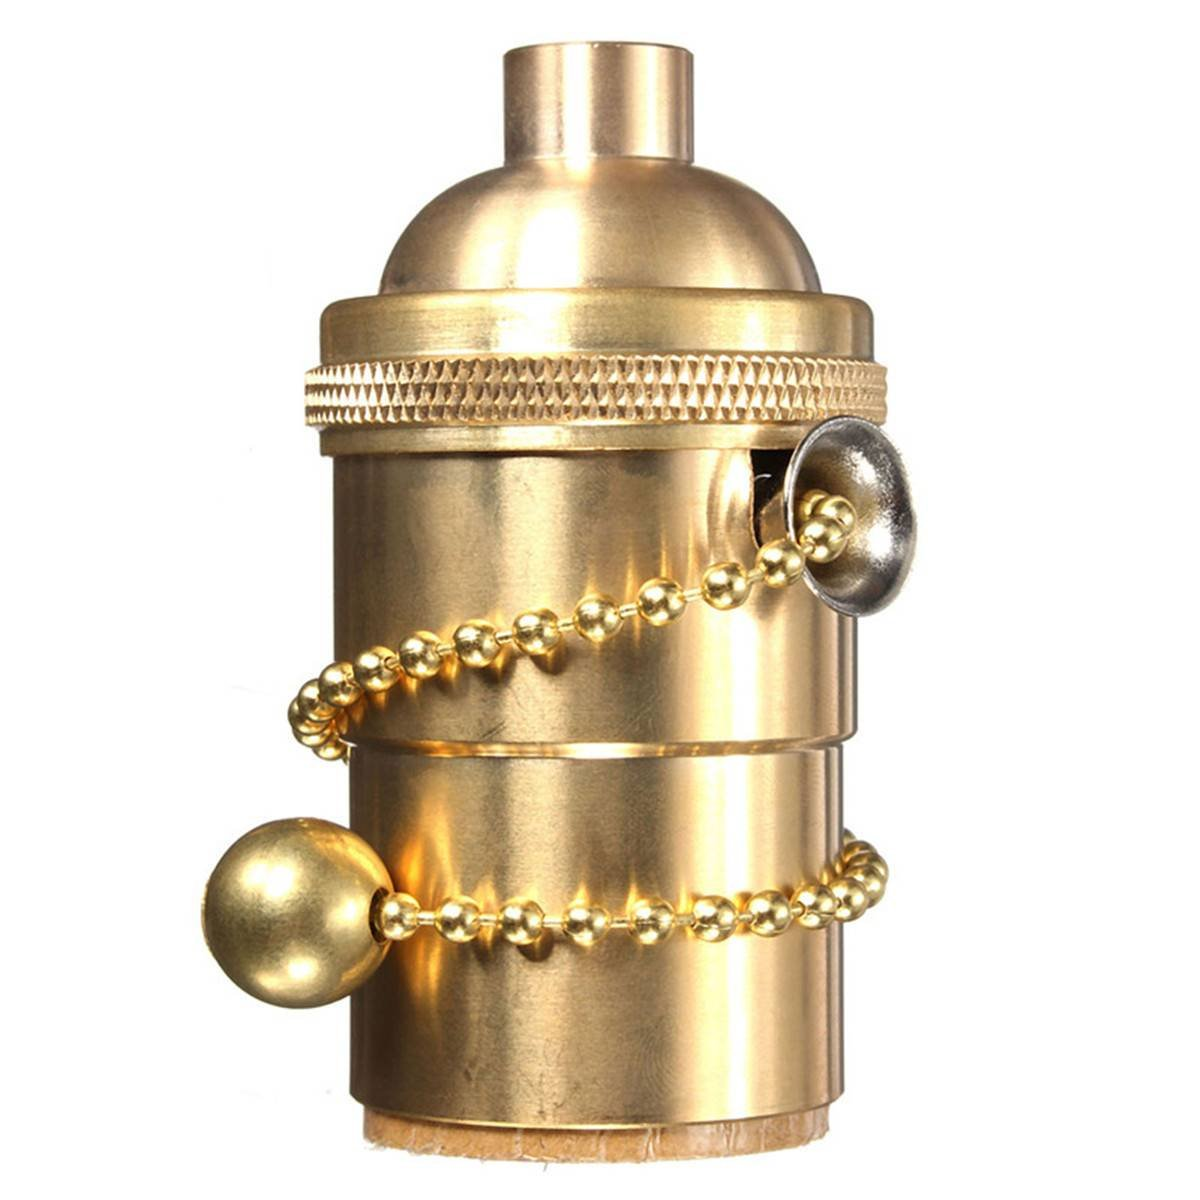 Light Socket, KINGSO E26/ E27 Solid Brass Edison Retro Pendant Lamp Holder for Lamp Socket And Fixture Replacement, Industrial Vintage DIY Projects, With Pull Chain(Copper)